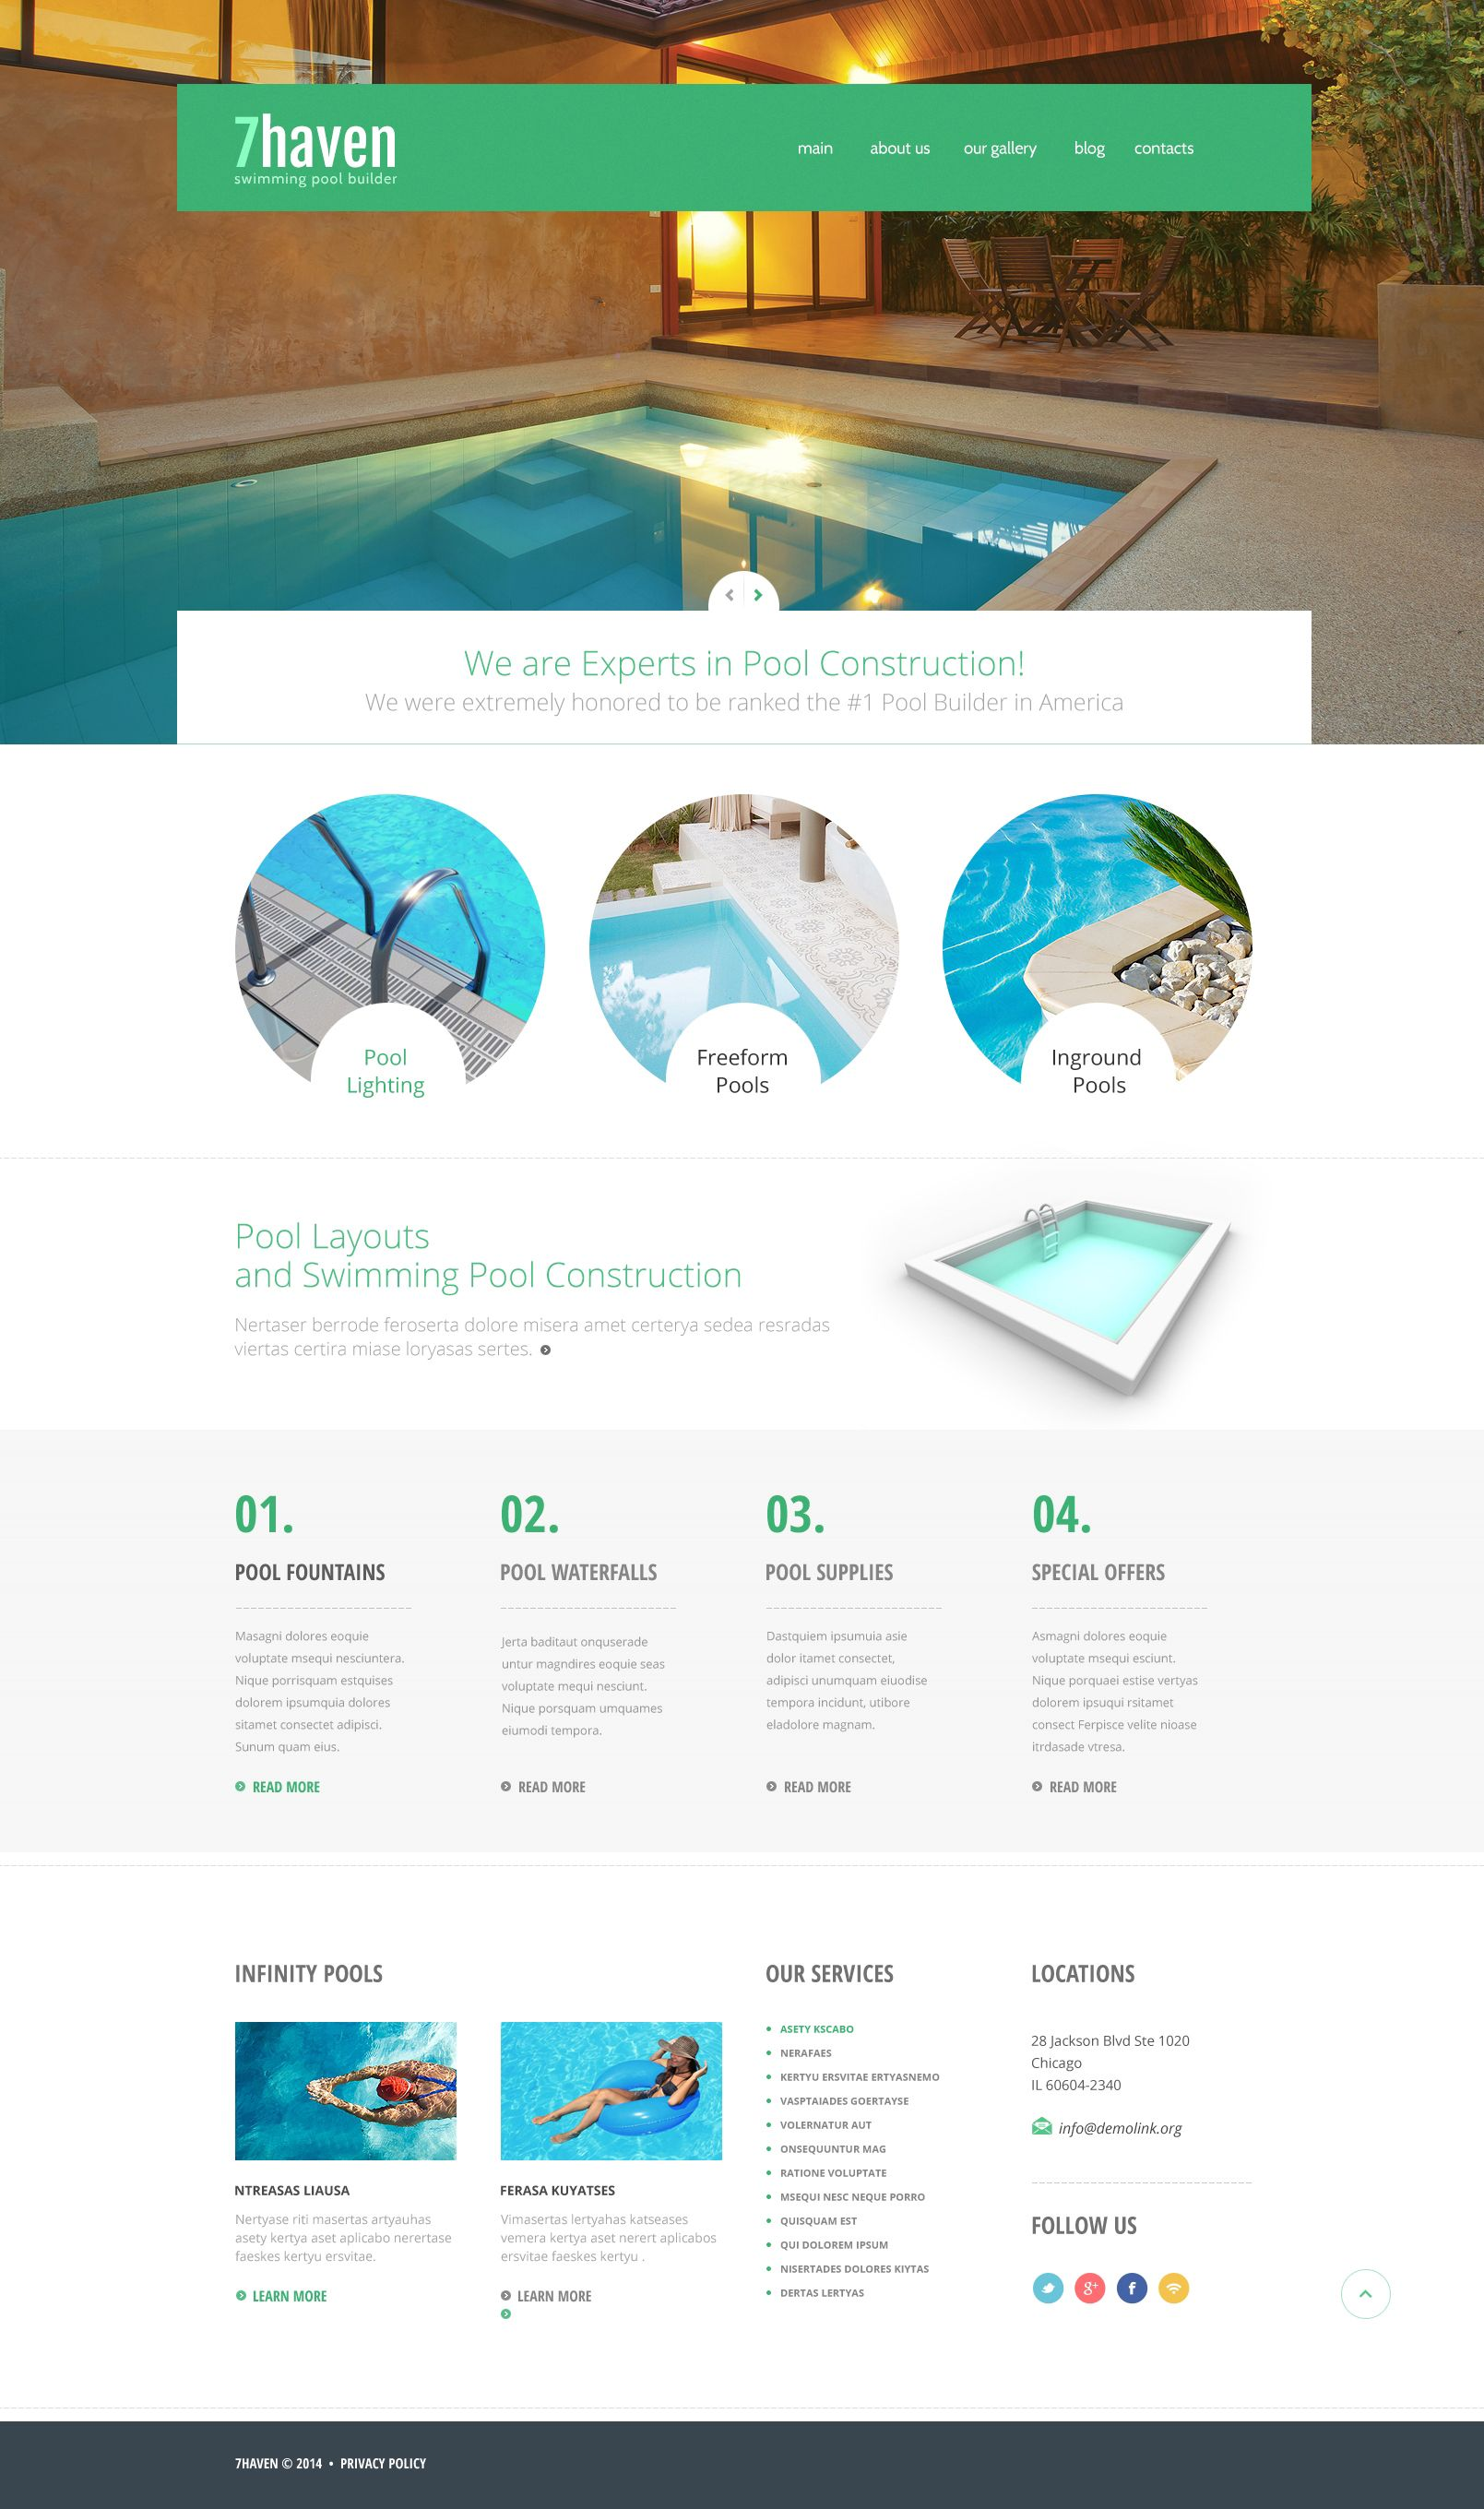 Exceptionnel Website Design Template 48436: Services Estimate Cleaner Dirty Testimonials  Professional Workteam Tips Client Price Tidying